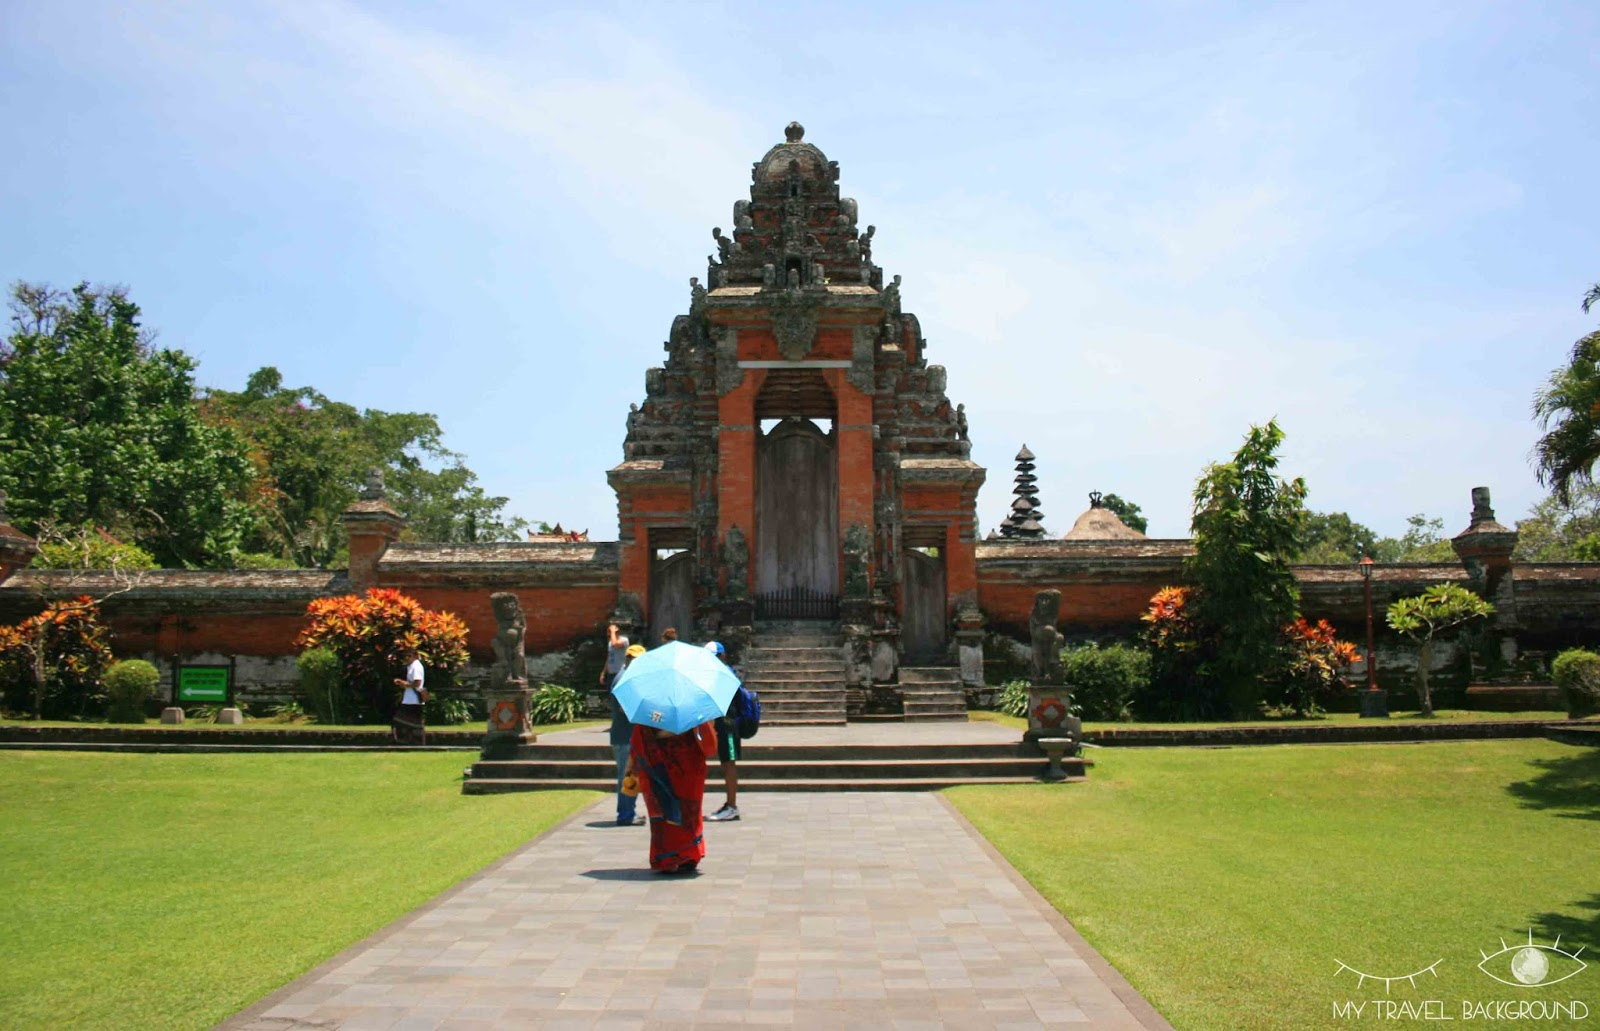 My Travel Background : que visiter dans le Nord de Bali? Le temple de Pura Taman Ajun